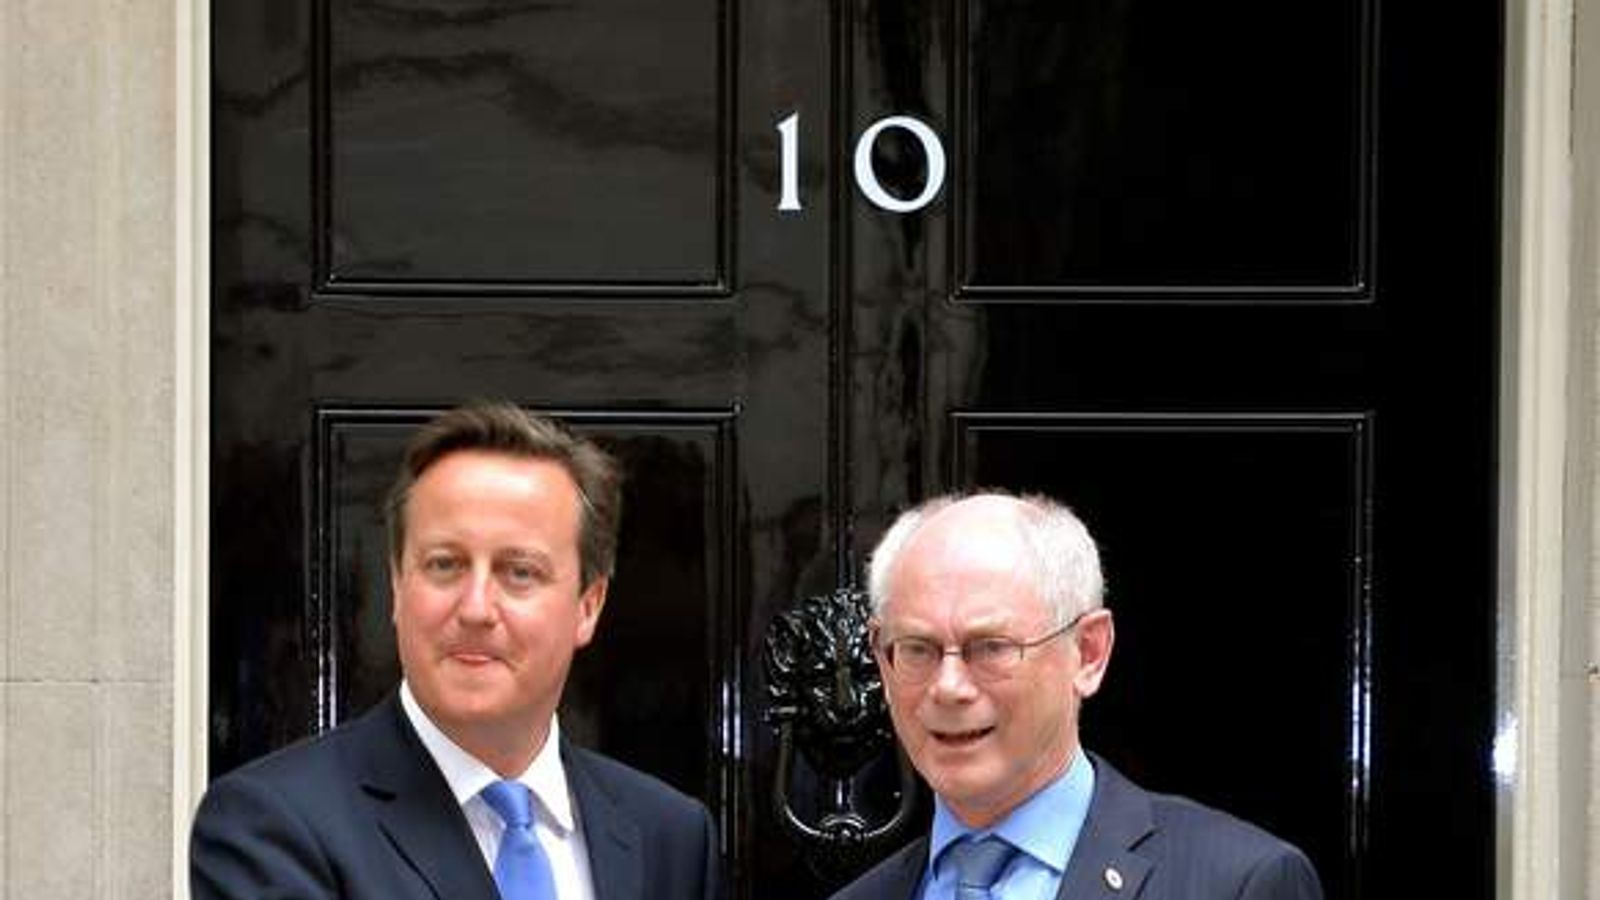 Prime Minister David Cameron greets  Herman Van Rompuy, President of the European Council, on the steps of number 10, Downing Street in Westminster.